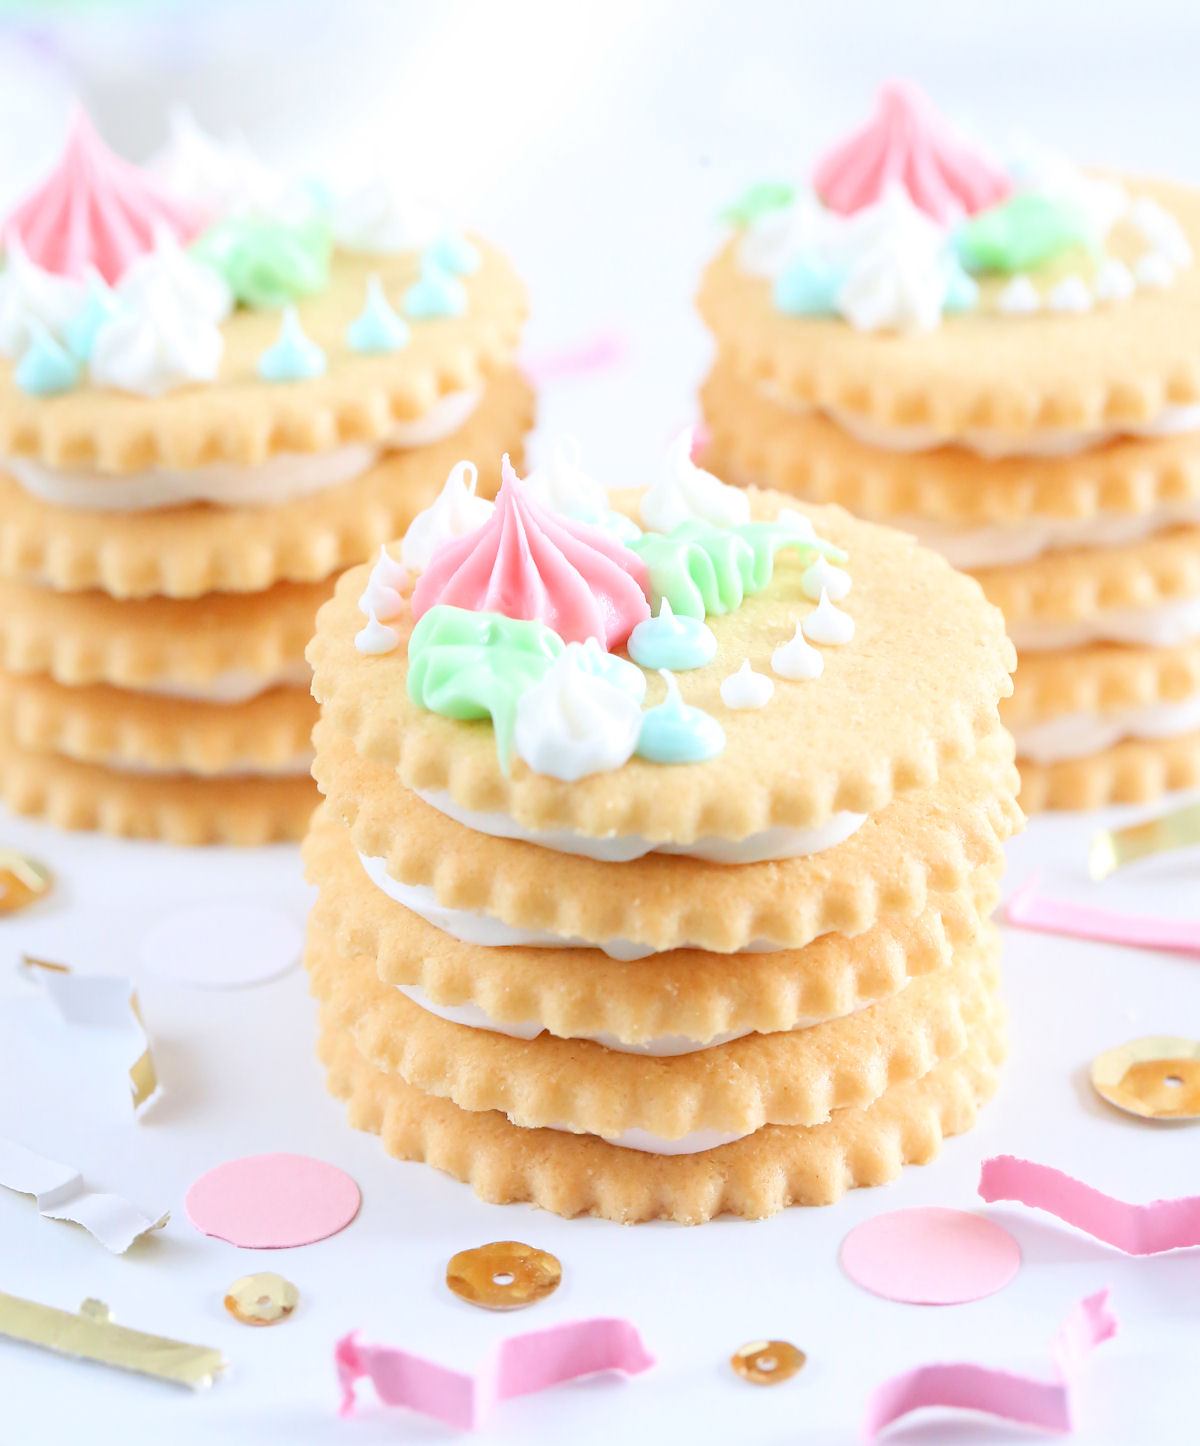 creative-diy-wedding-ideas-spring-cookies-fetti.jpg